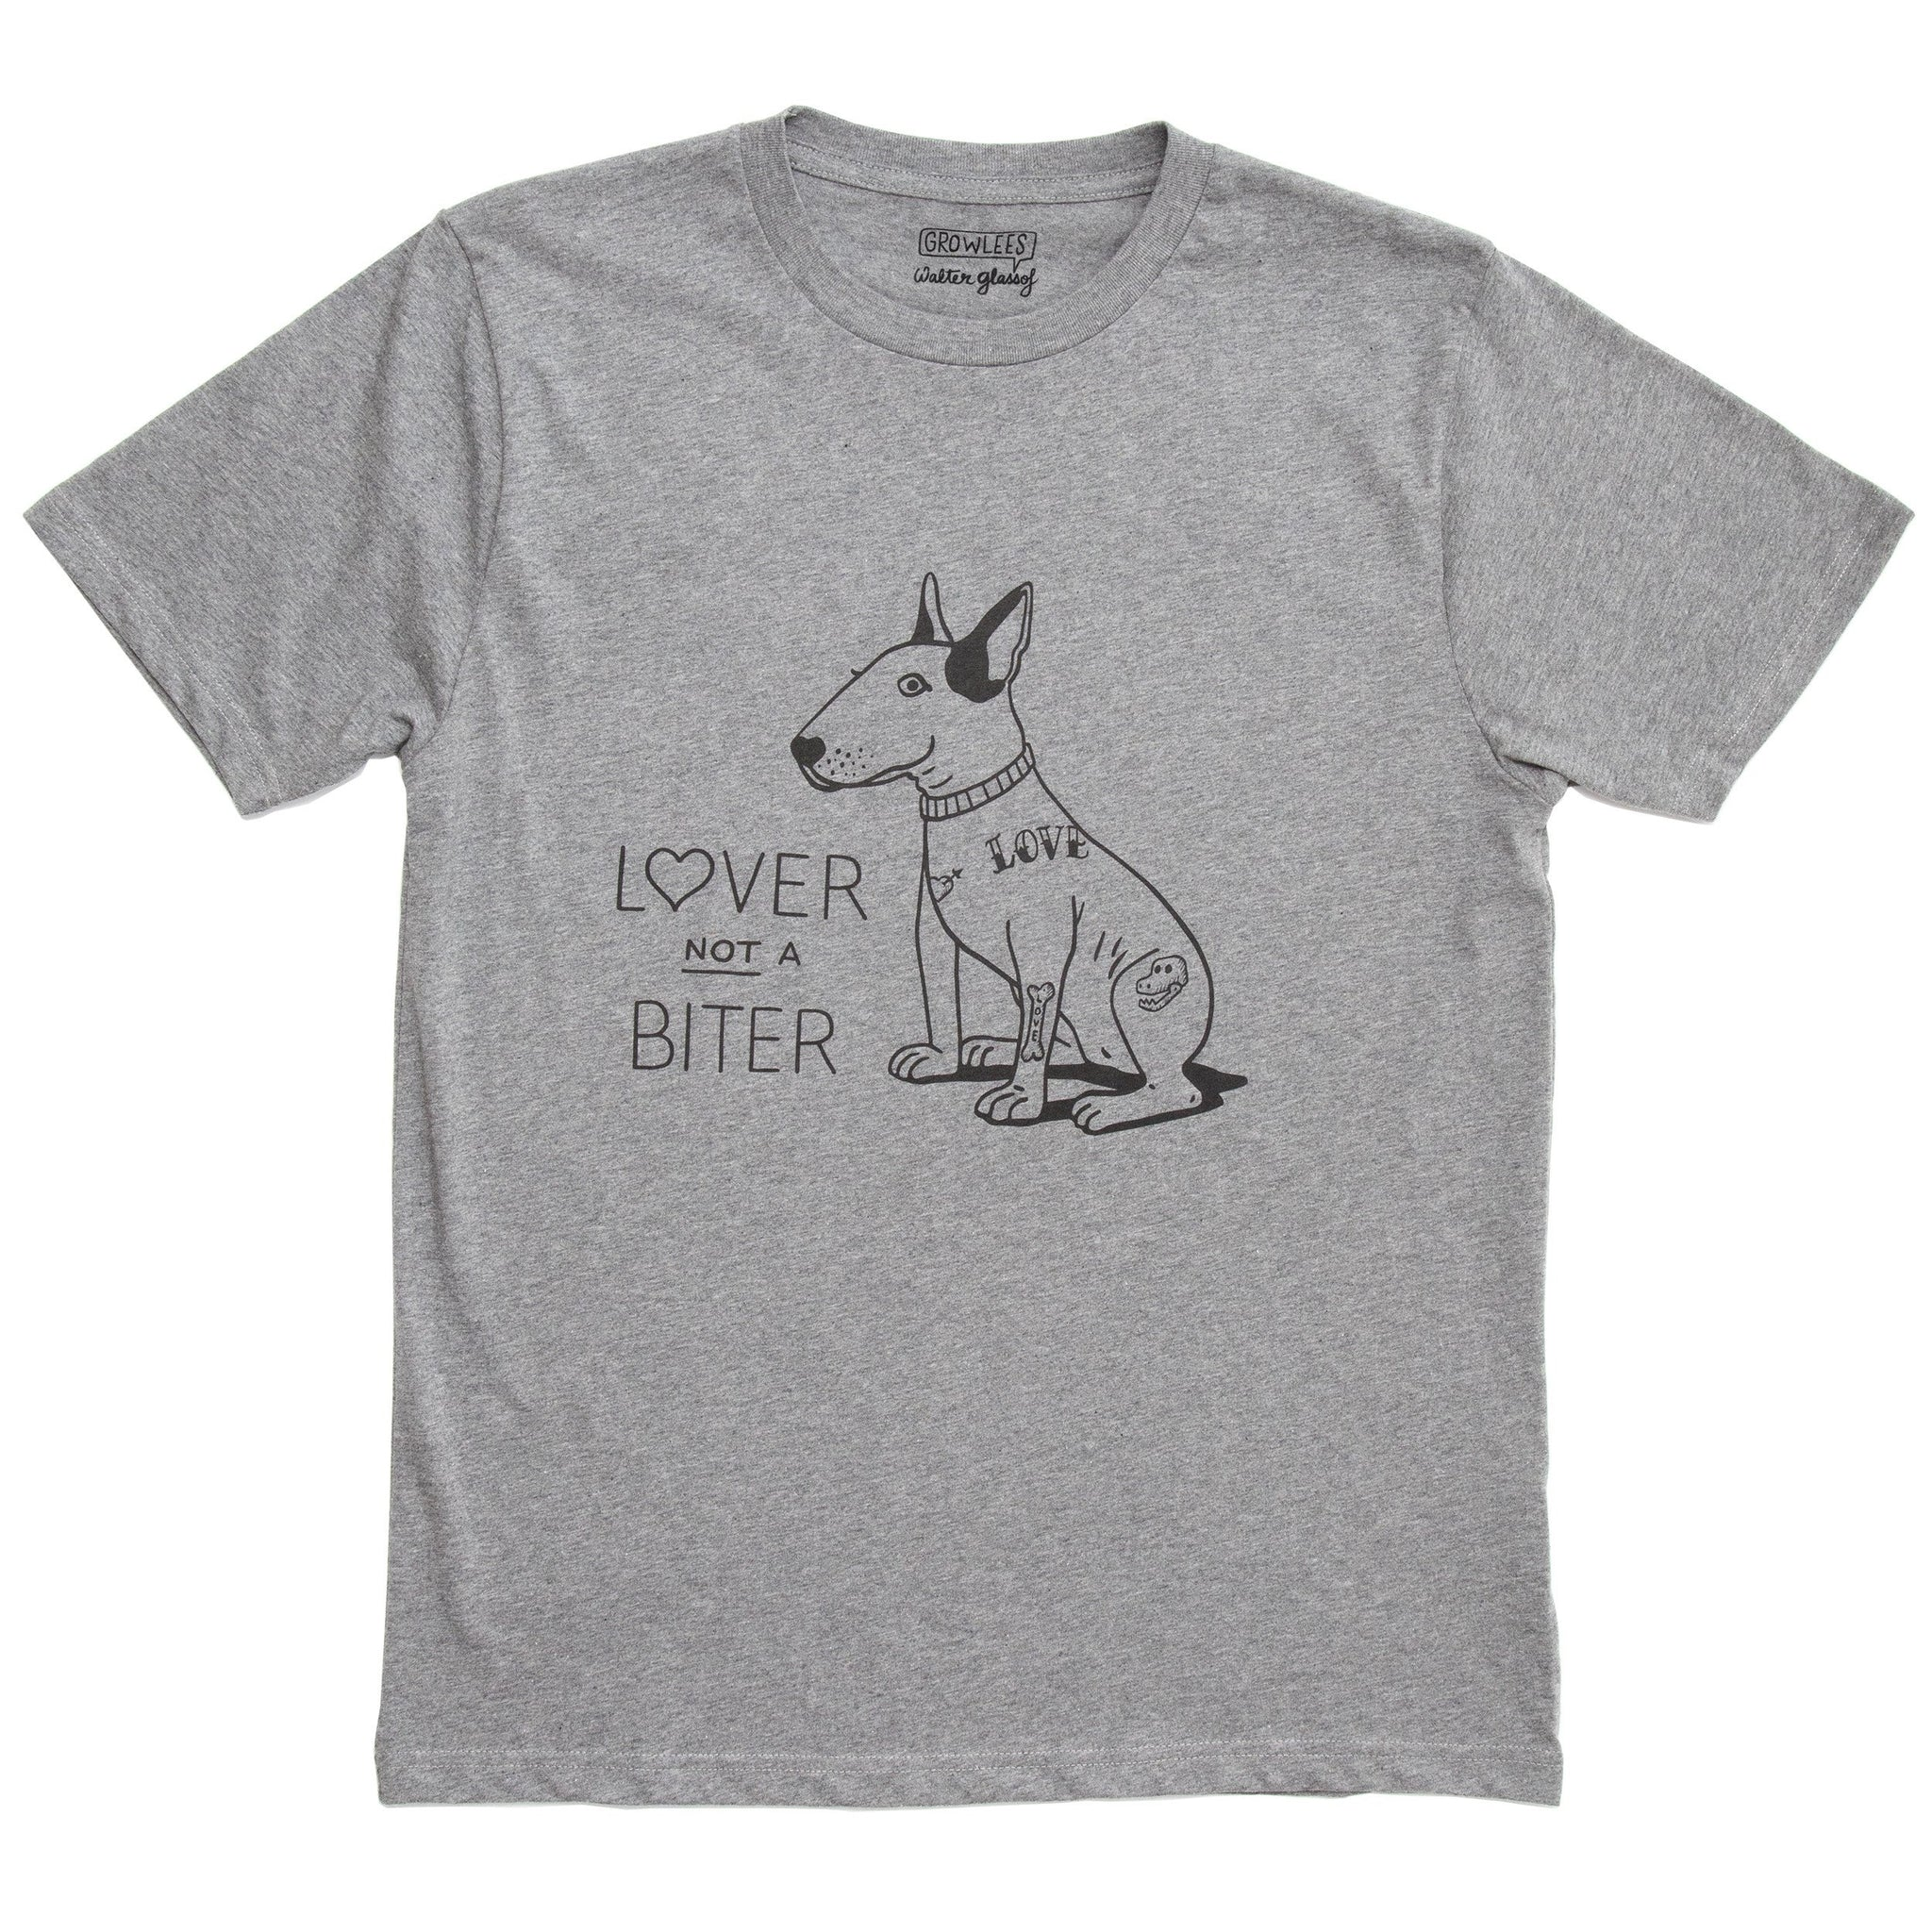 Lover not a biter | t-shirt | Growlees